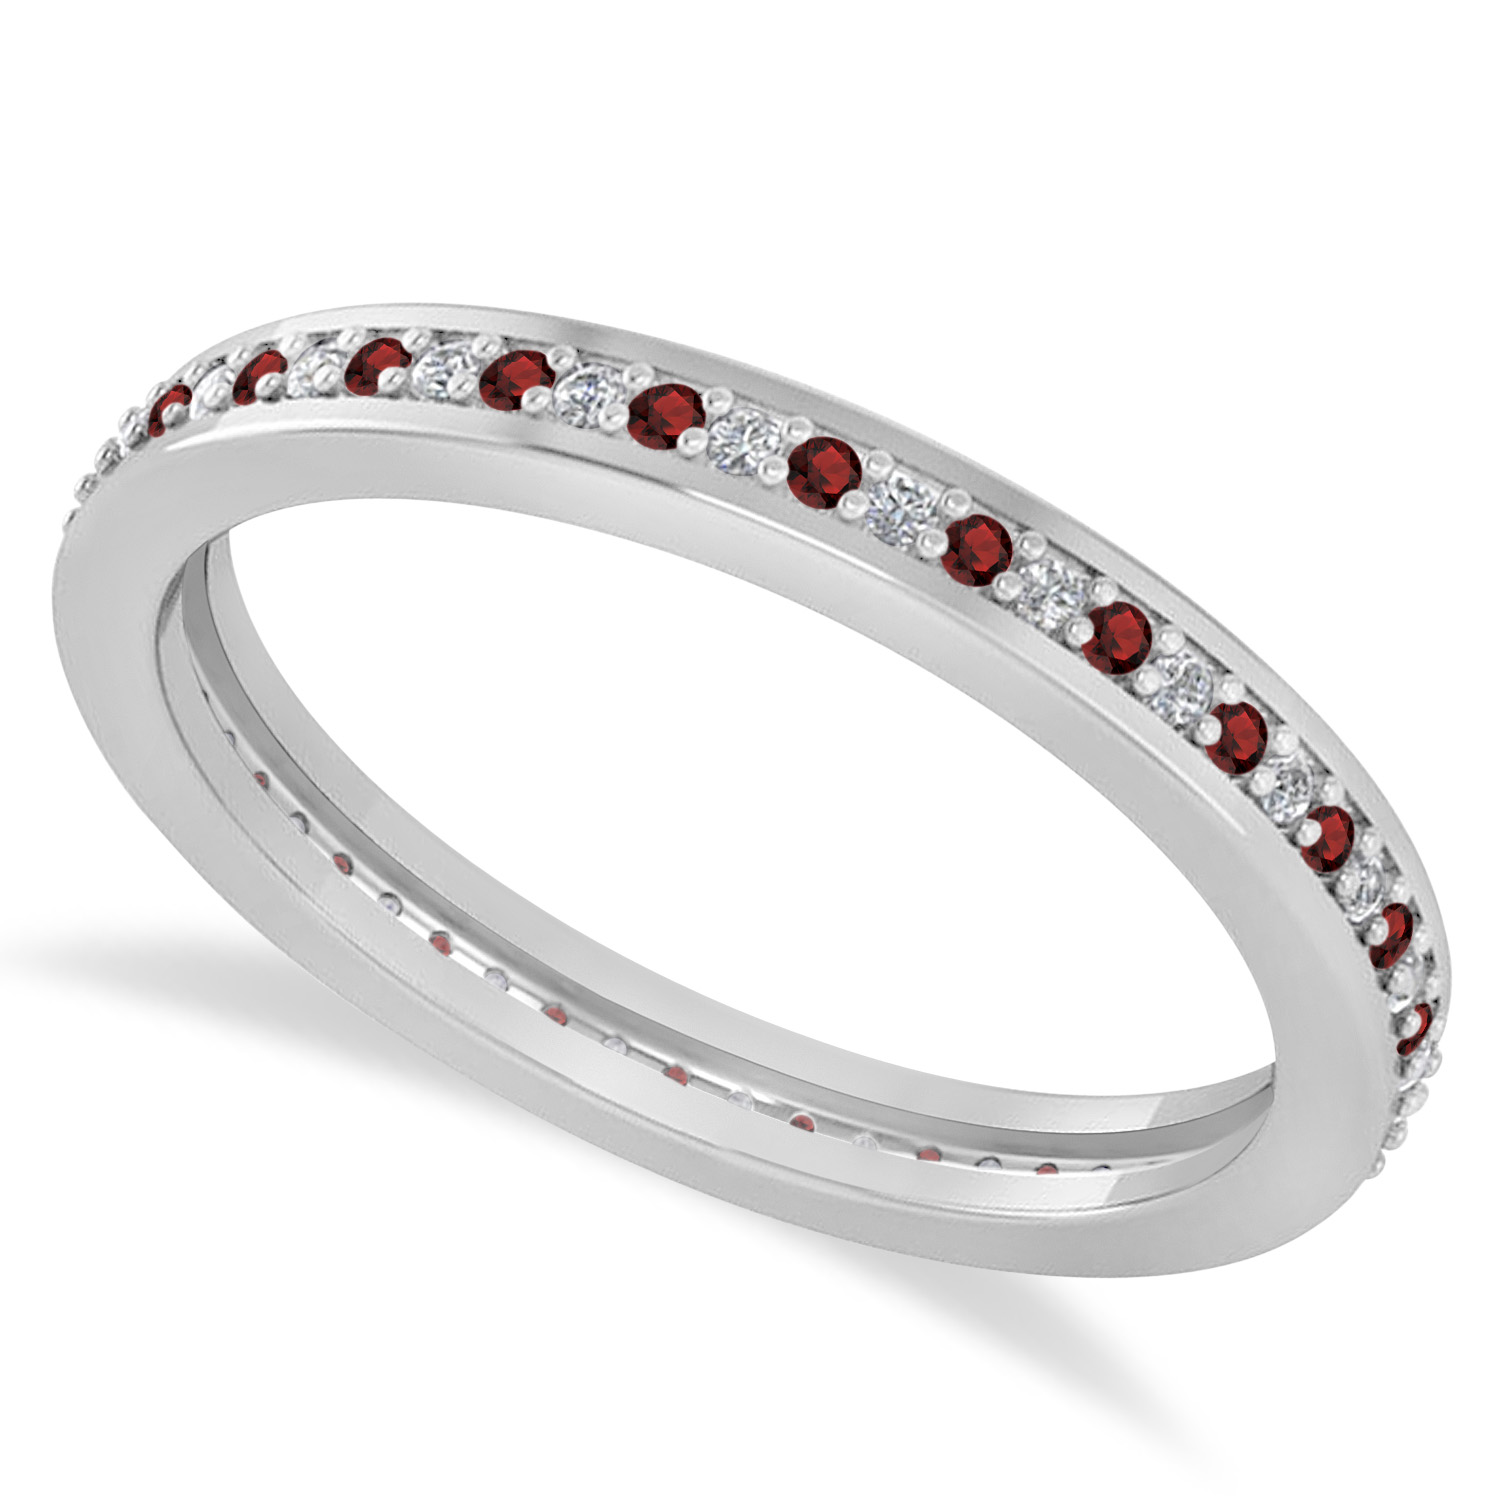 Garnet Ring Bands: Diamond & Garnet Eternity Wedding Band 14k White Gold 0